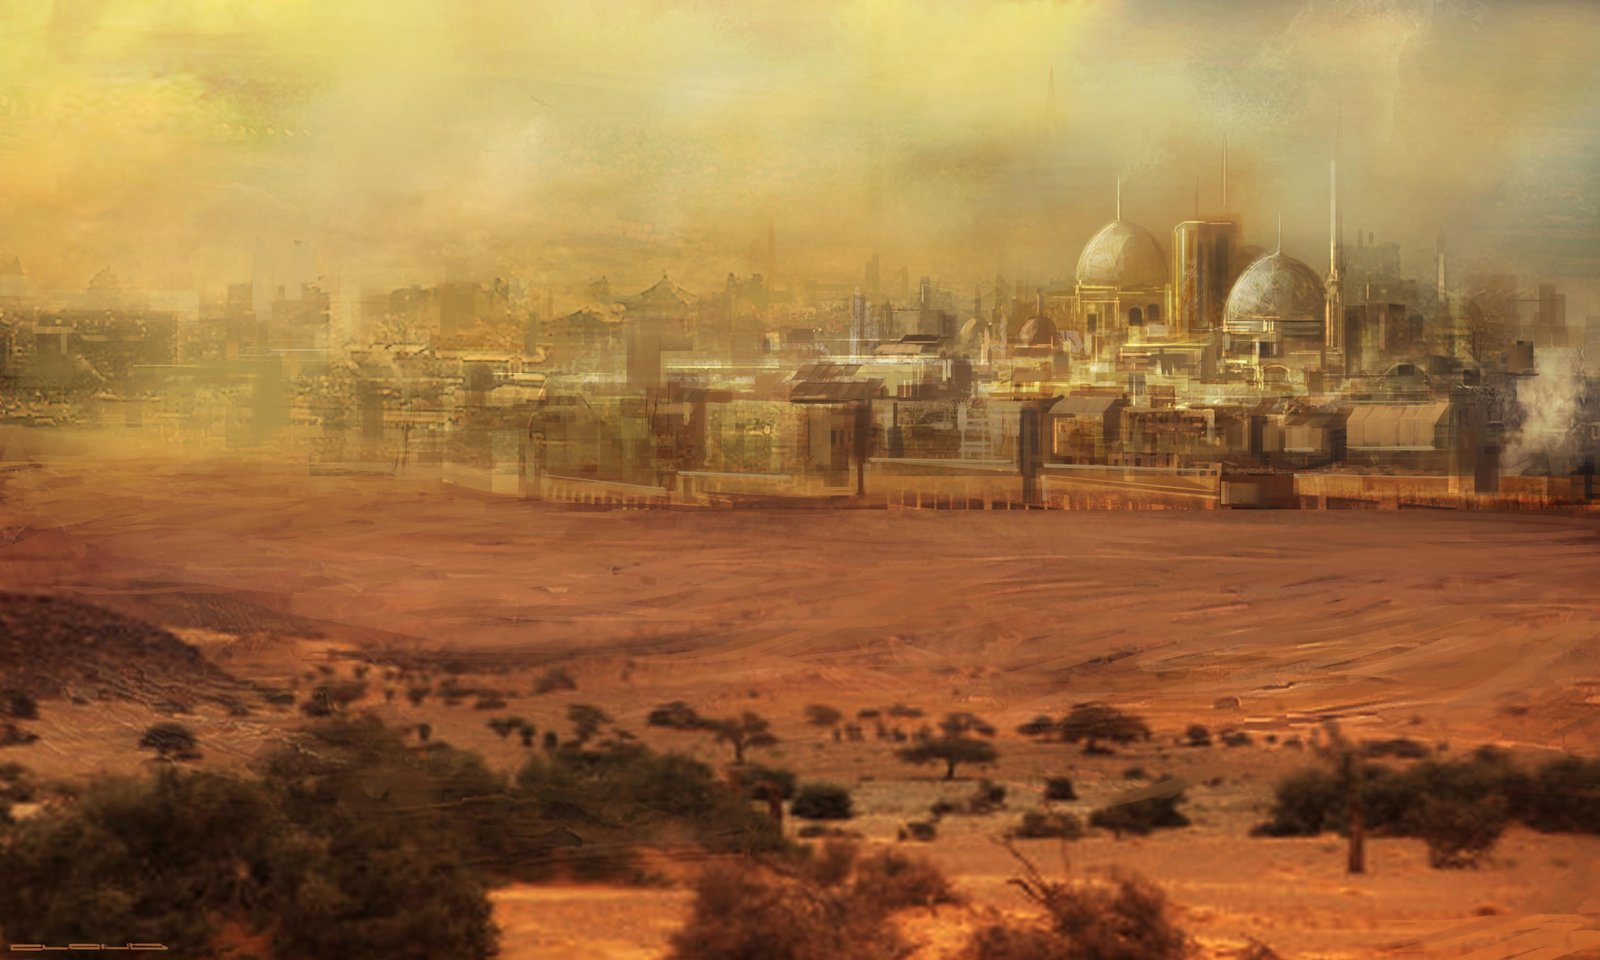 large_desert_city_dvg_by_cloudminedesign-d6bnvmx.jpg